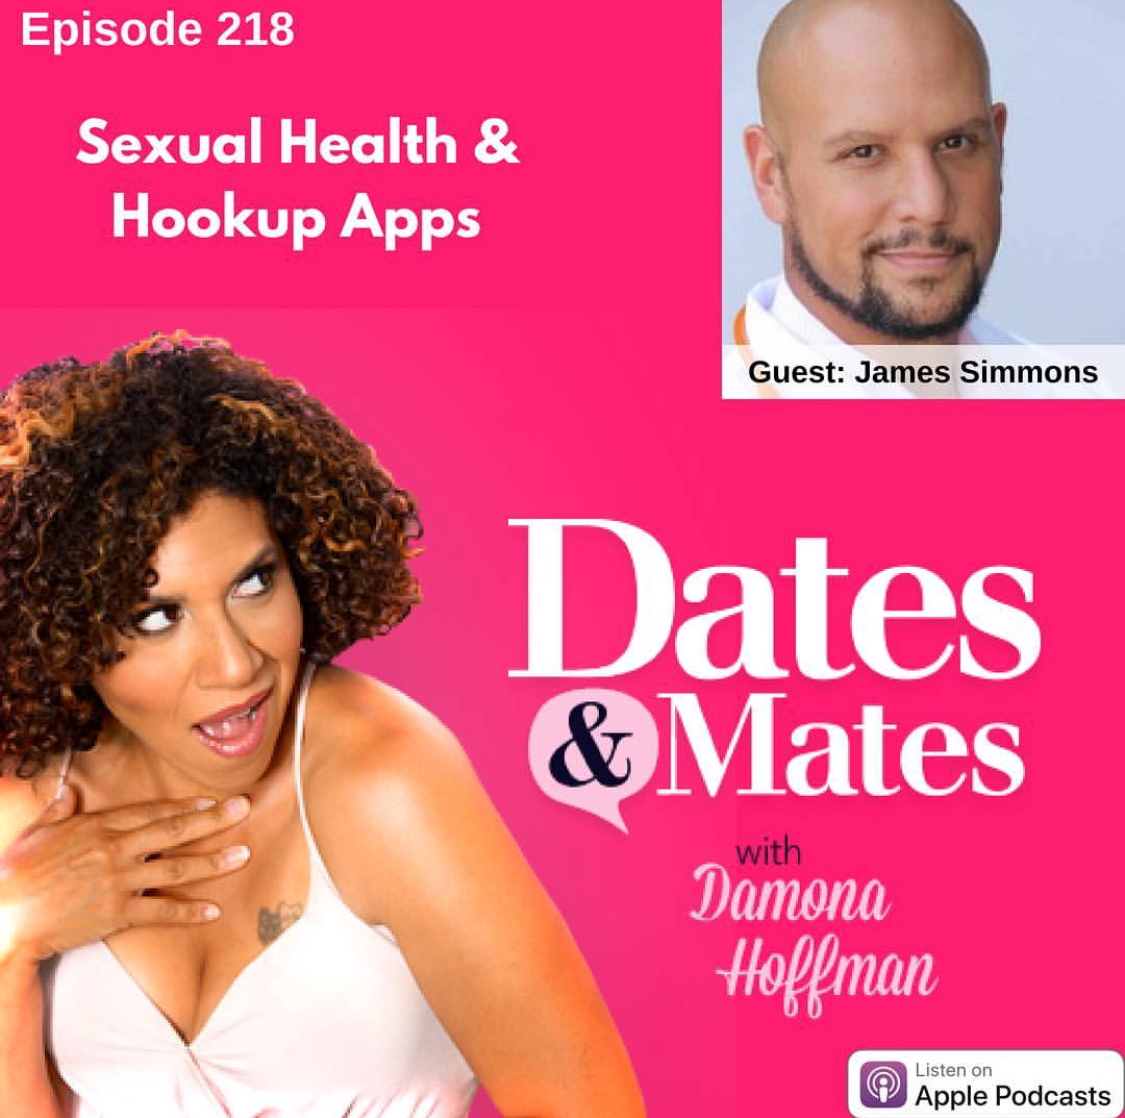 Podcasts on sexual health